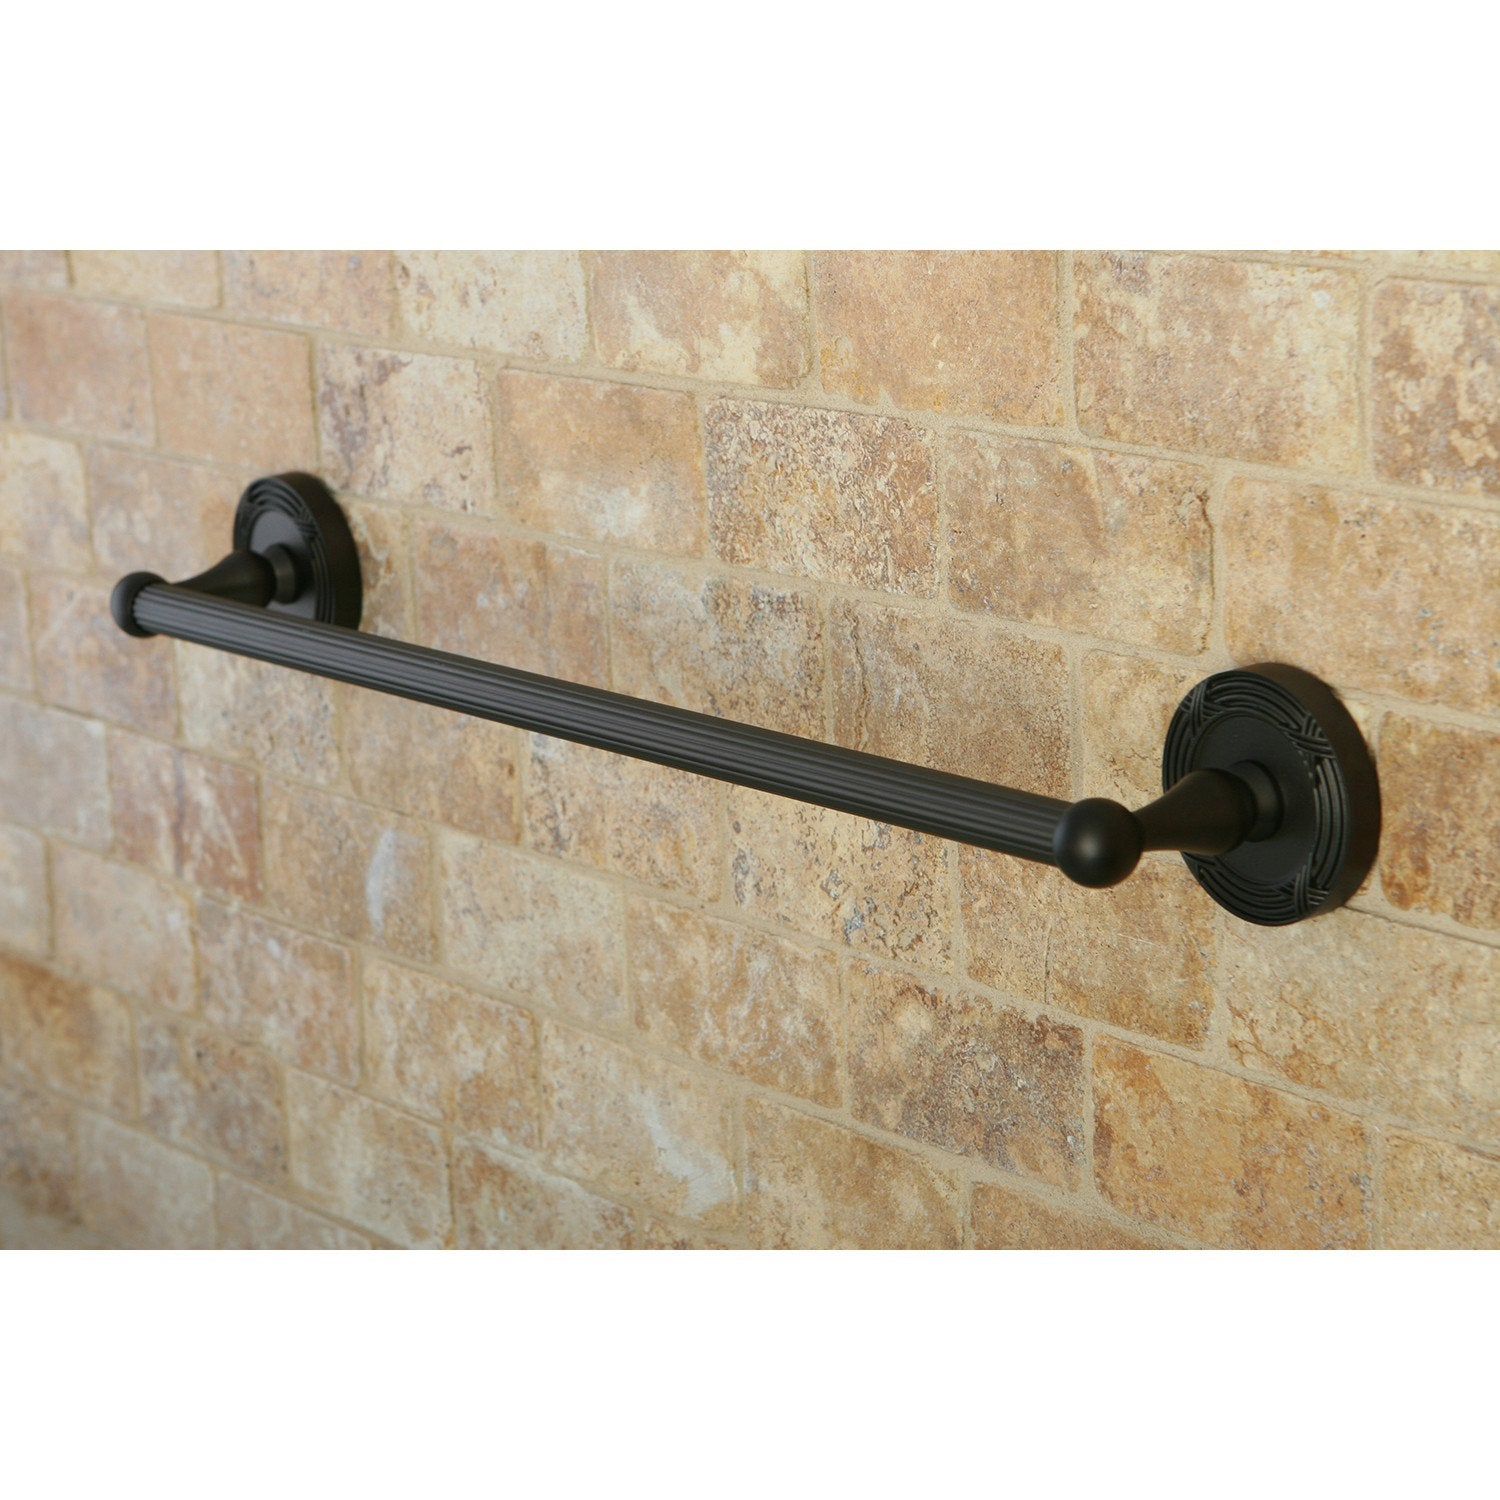 "Kingston Brass Oil Rubbed Bronze Georgian 18"" single towel rack bar BA9312ORB"